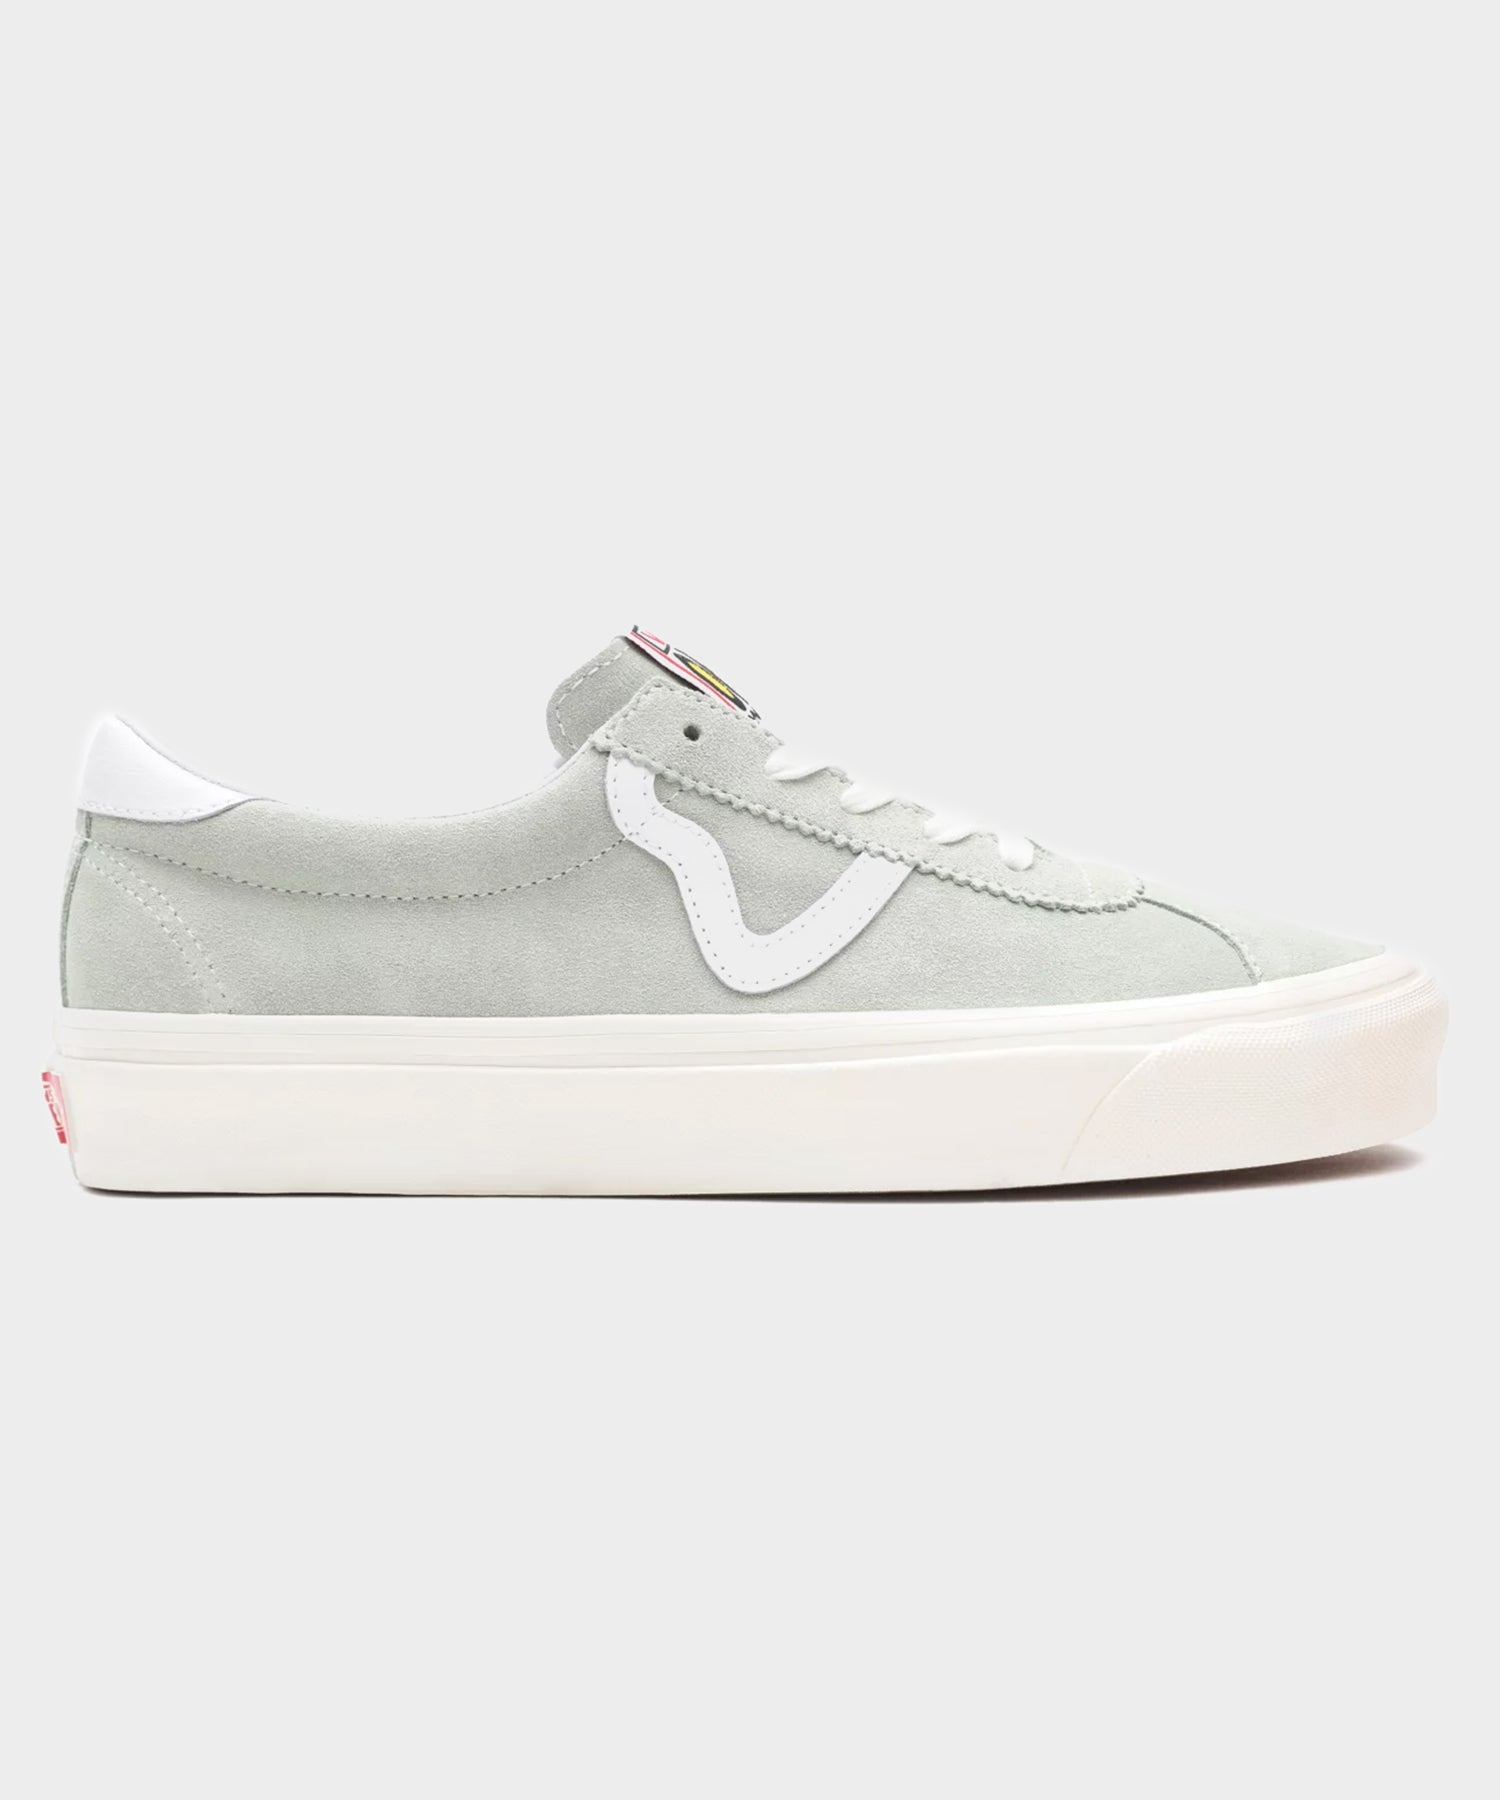 VANS ANAHEIM FACTORY STYLE 73 DX in PLATINUM